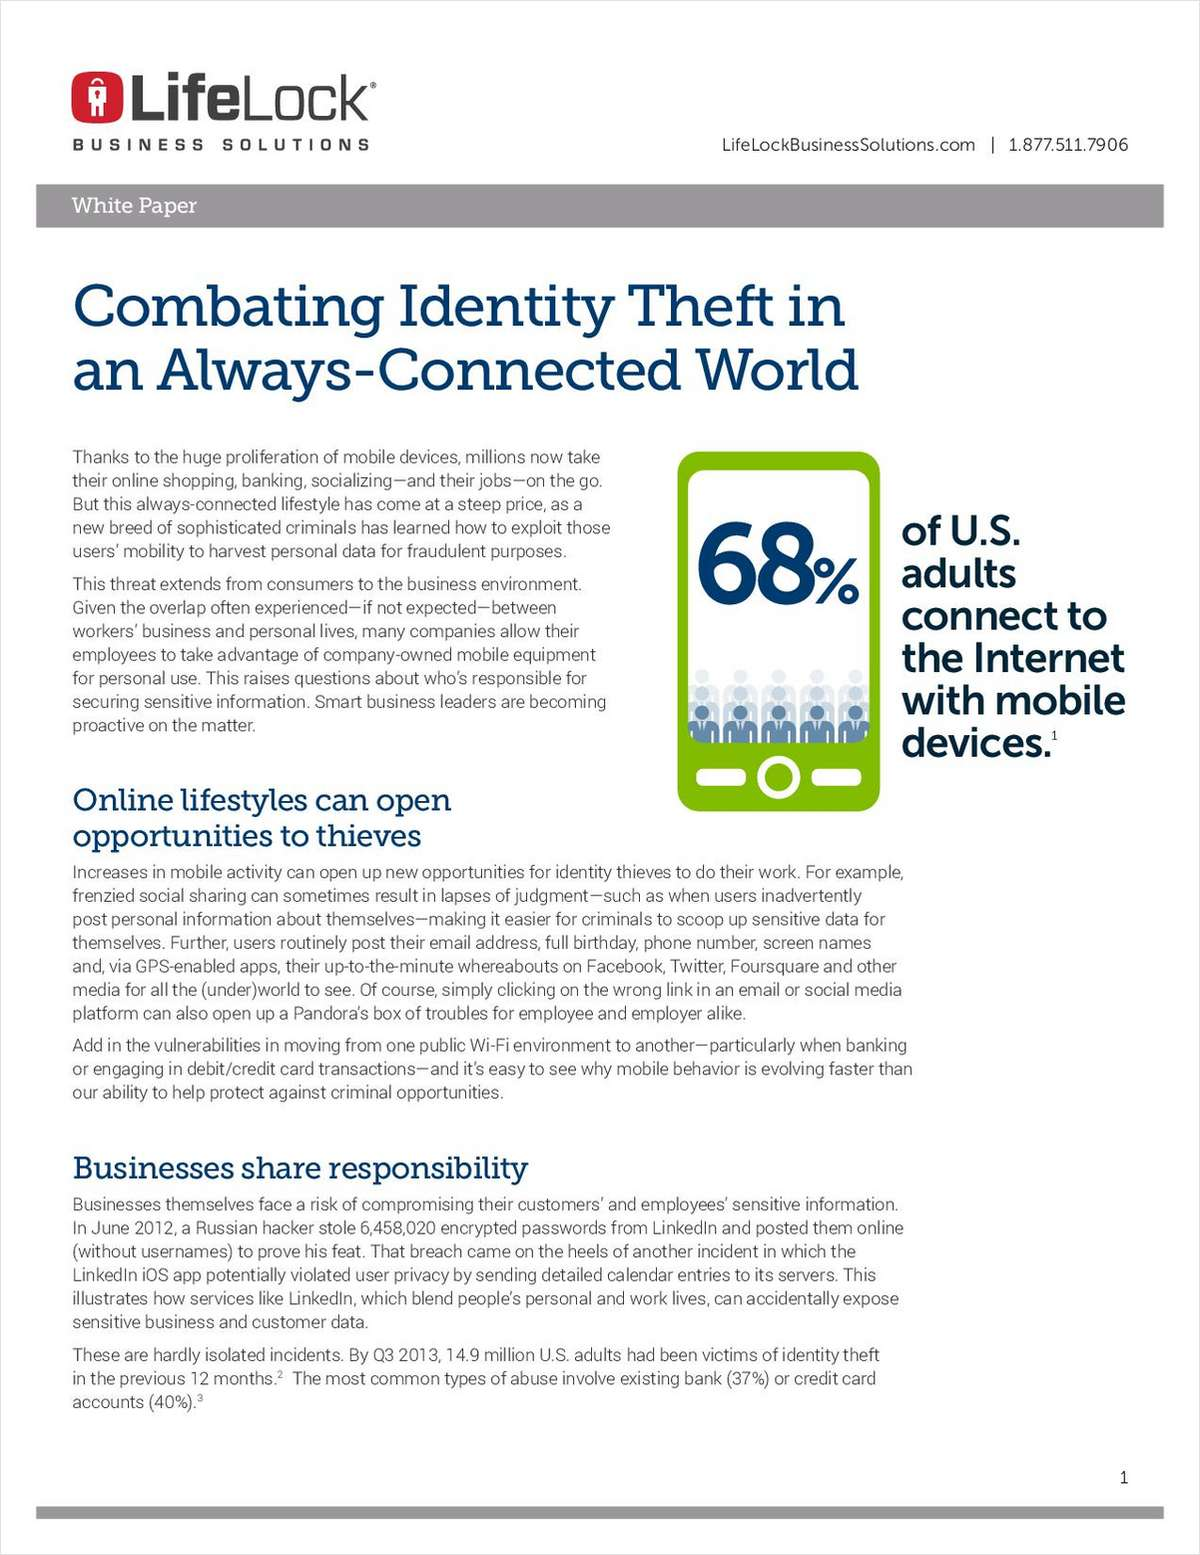 Combating Identity Theft in an Always-Connected World